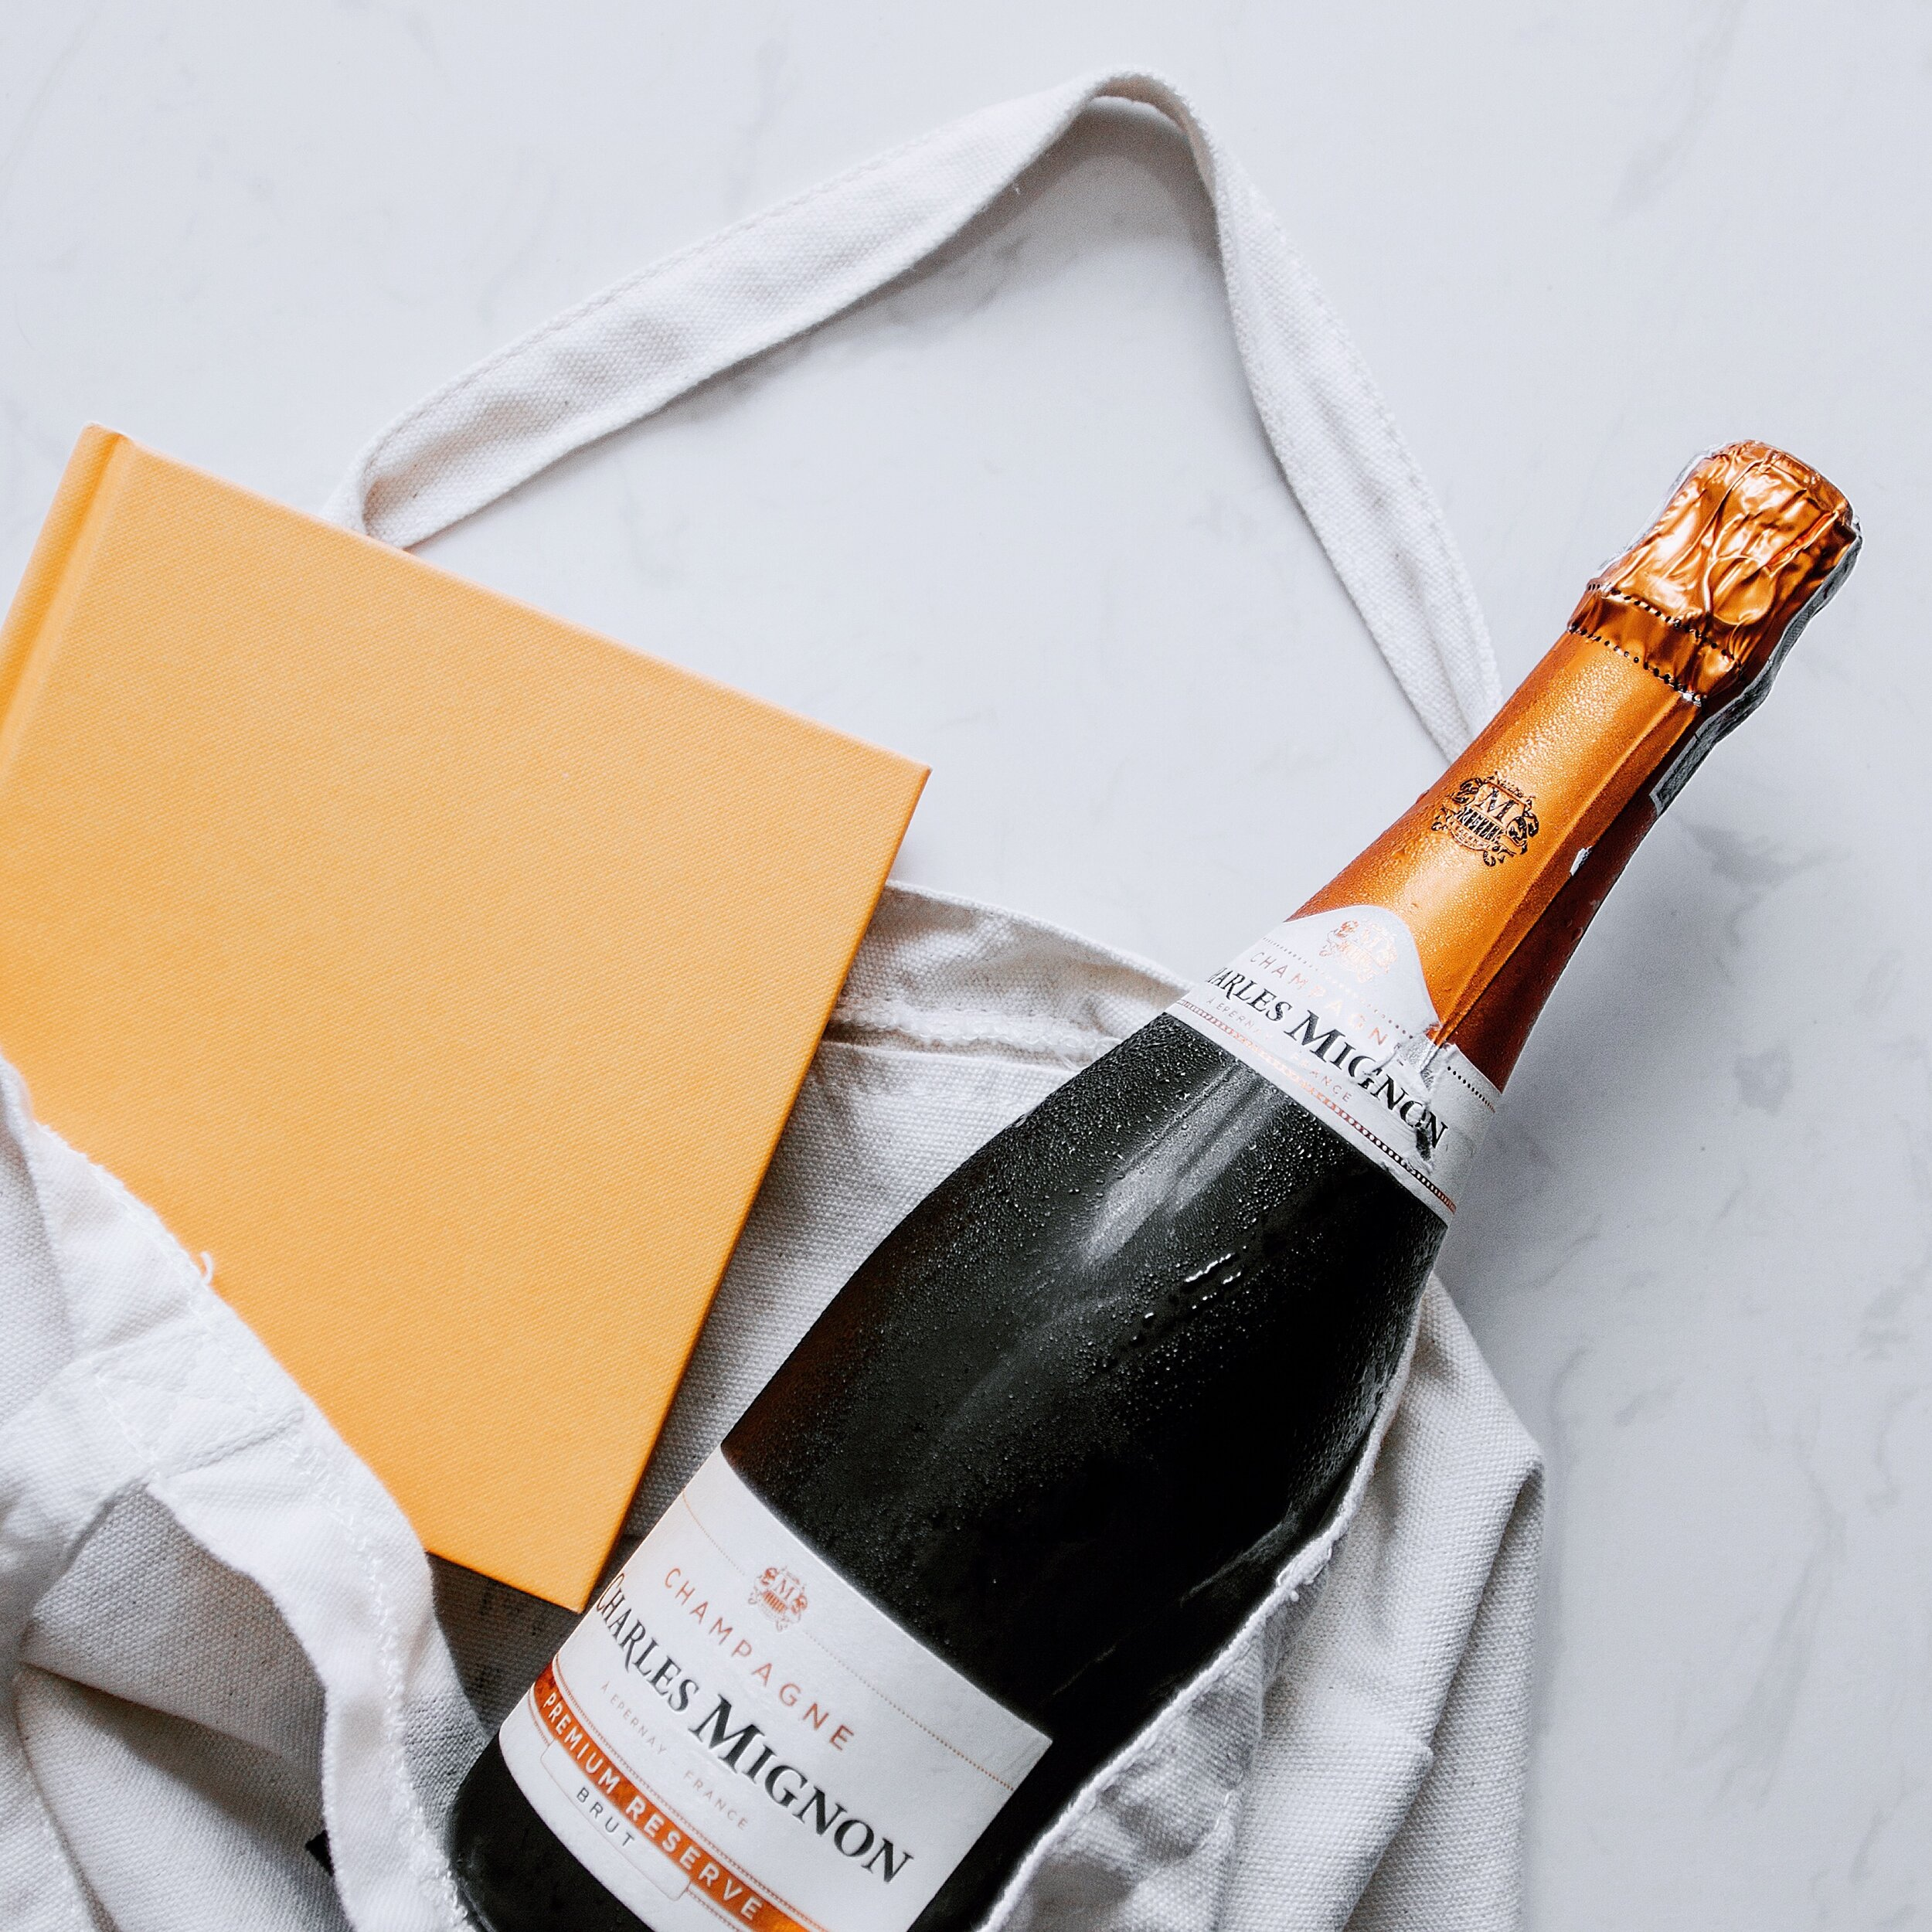 Champagne Popping? Make it last a second and a third day. - Simply throw in a teaspoon, handle down, into the bottle's mouth, refrigerate and enjoy over the next few days.